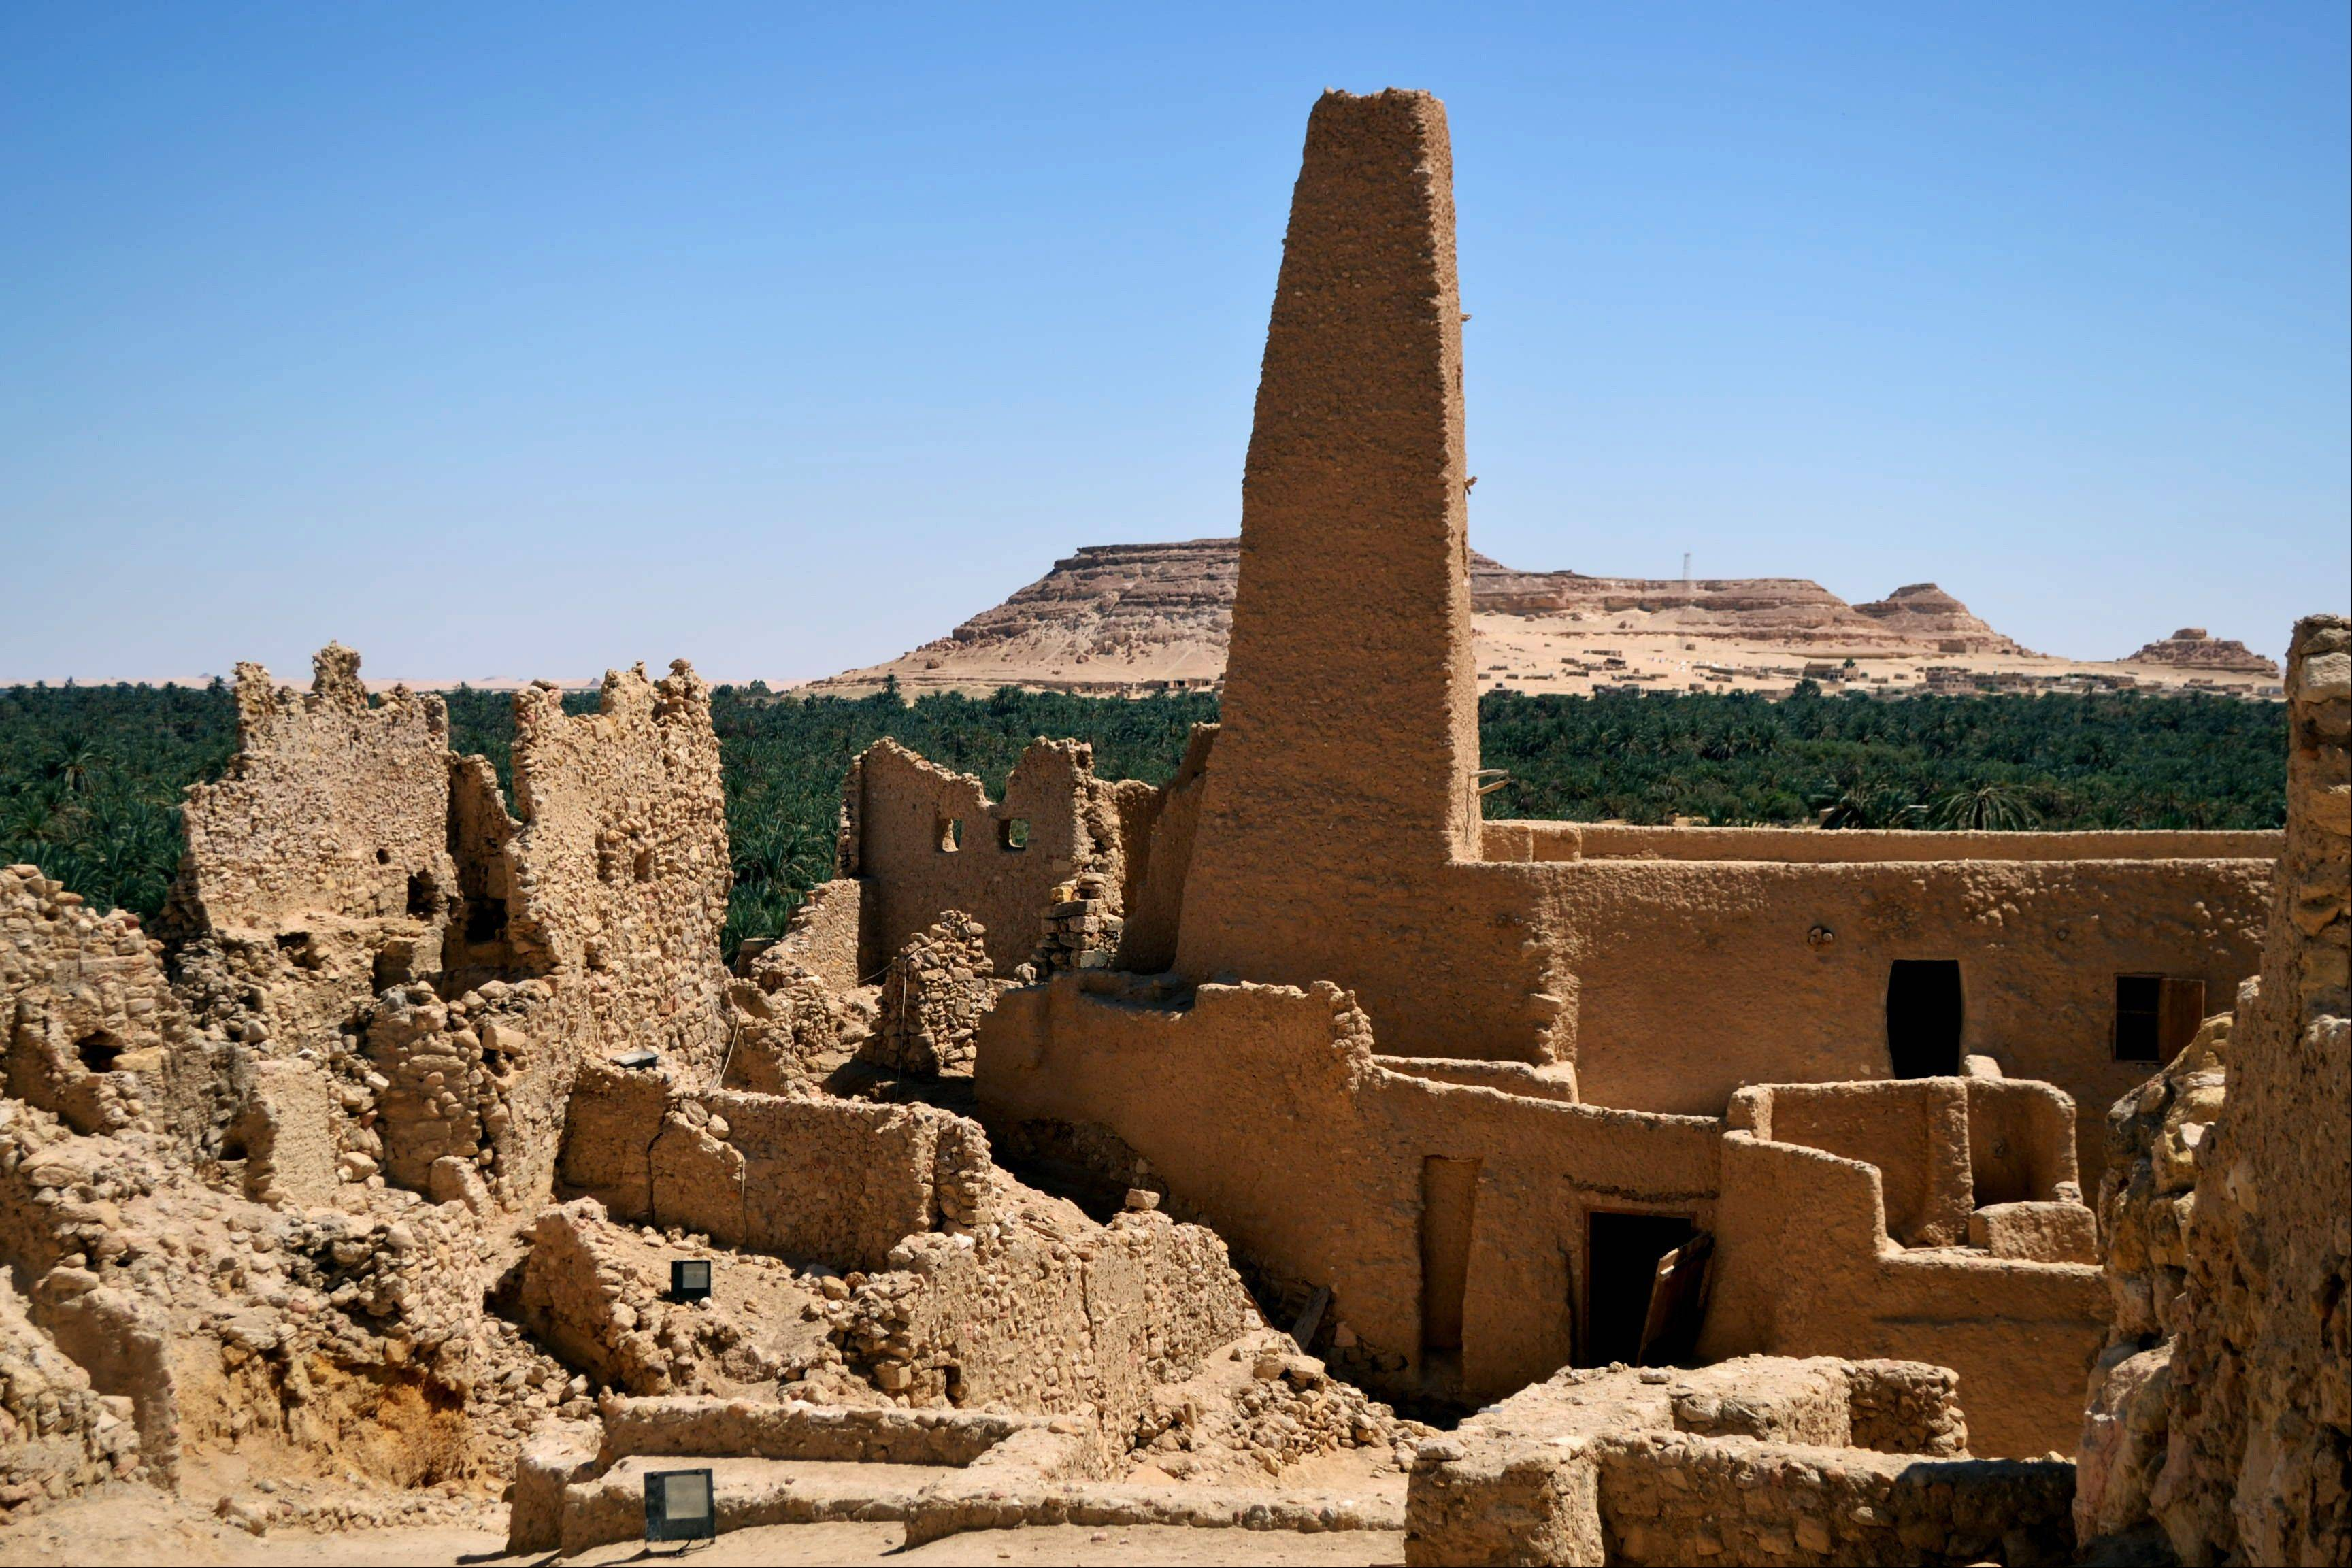 Ruins called the Fortress of Shali draws tourists to the Egyptian oasis of Siwa, a Berber town of some 27,000 people.